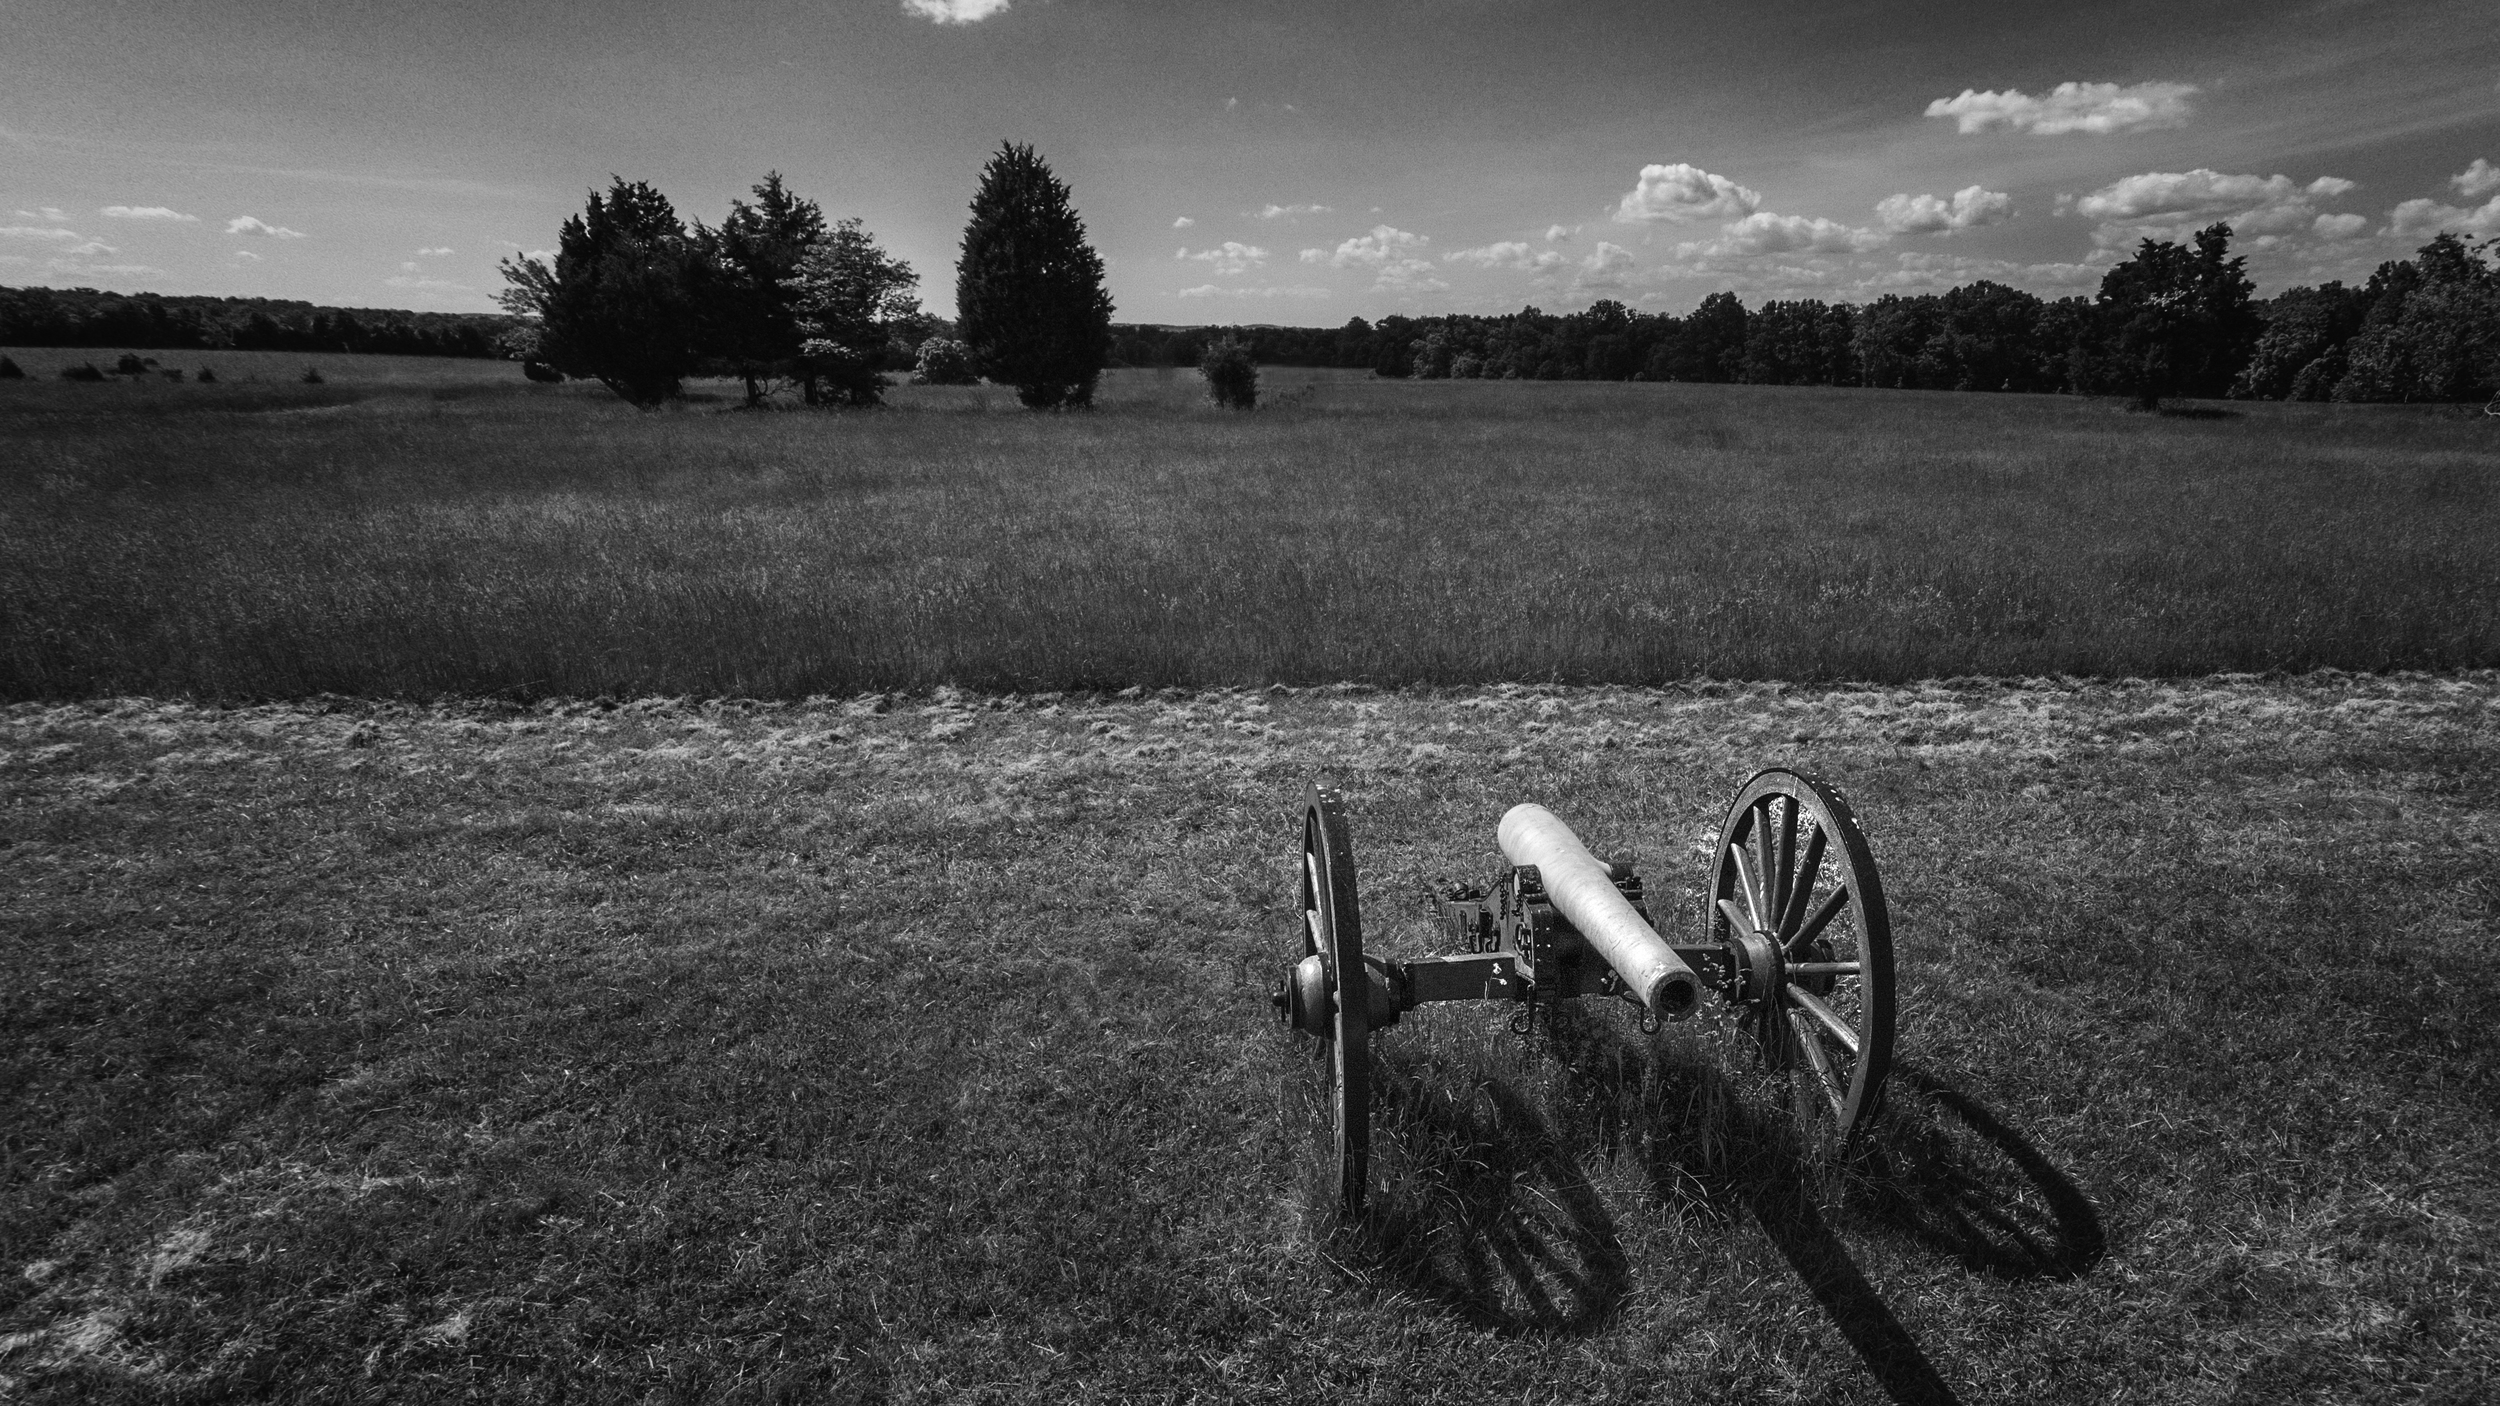 One of the canons at the battlefield. I am maybe only 60ft off the ground for this photo, but it helps give a different and unique perspective - which is why I got it! Edited in Adobe Camera RAW and Nik Silver Efex 2.